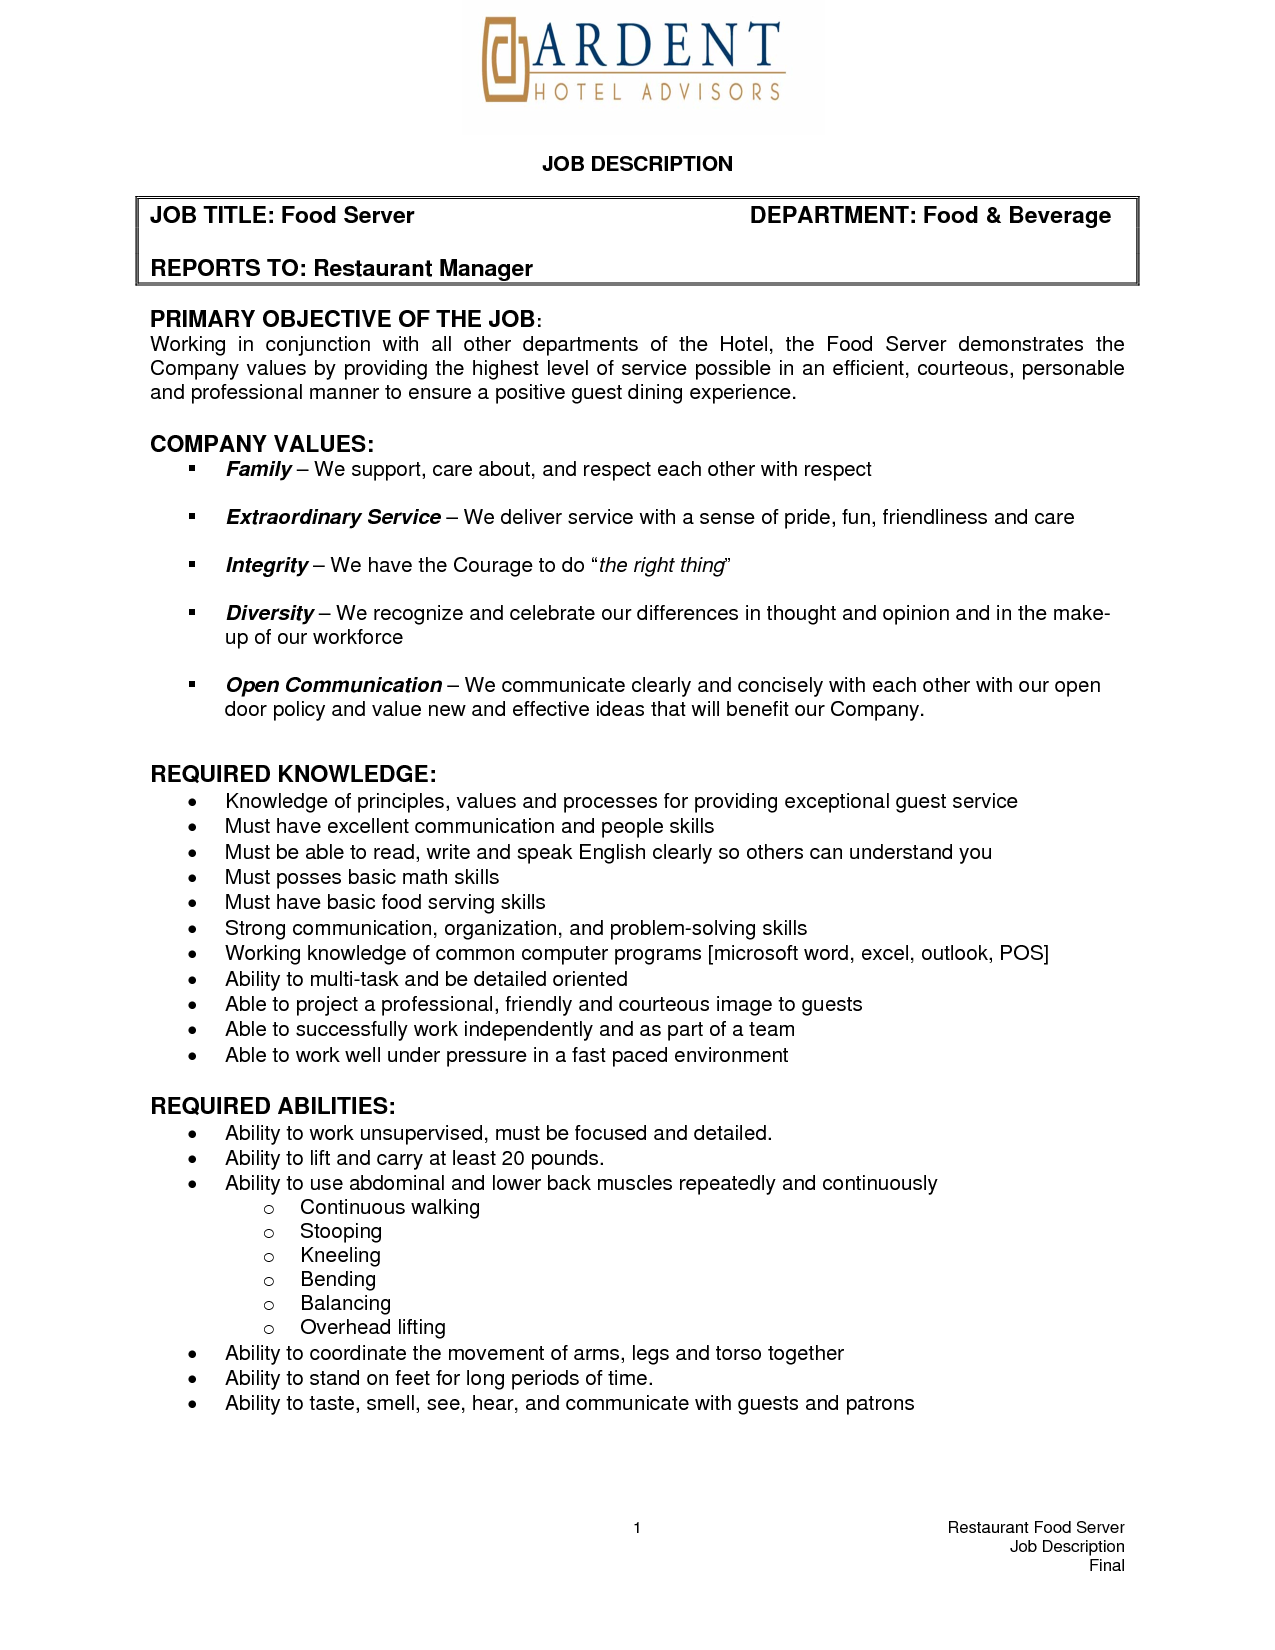 Server Job Description Resume Server Job Description Resume